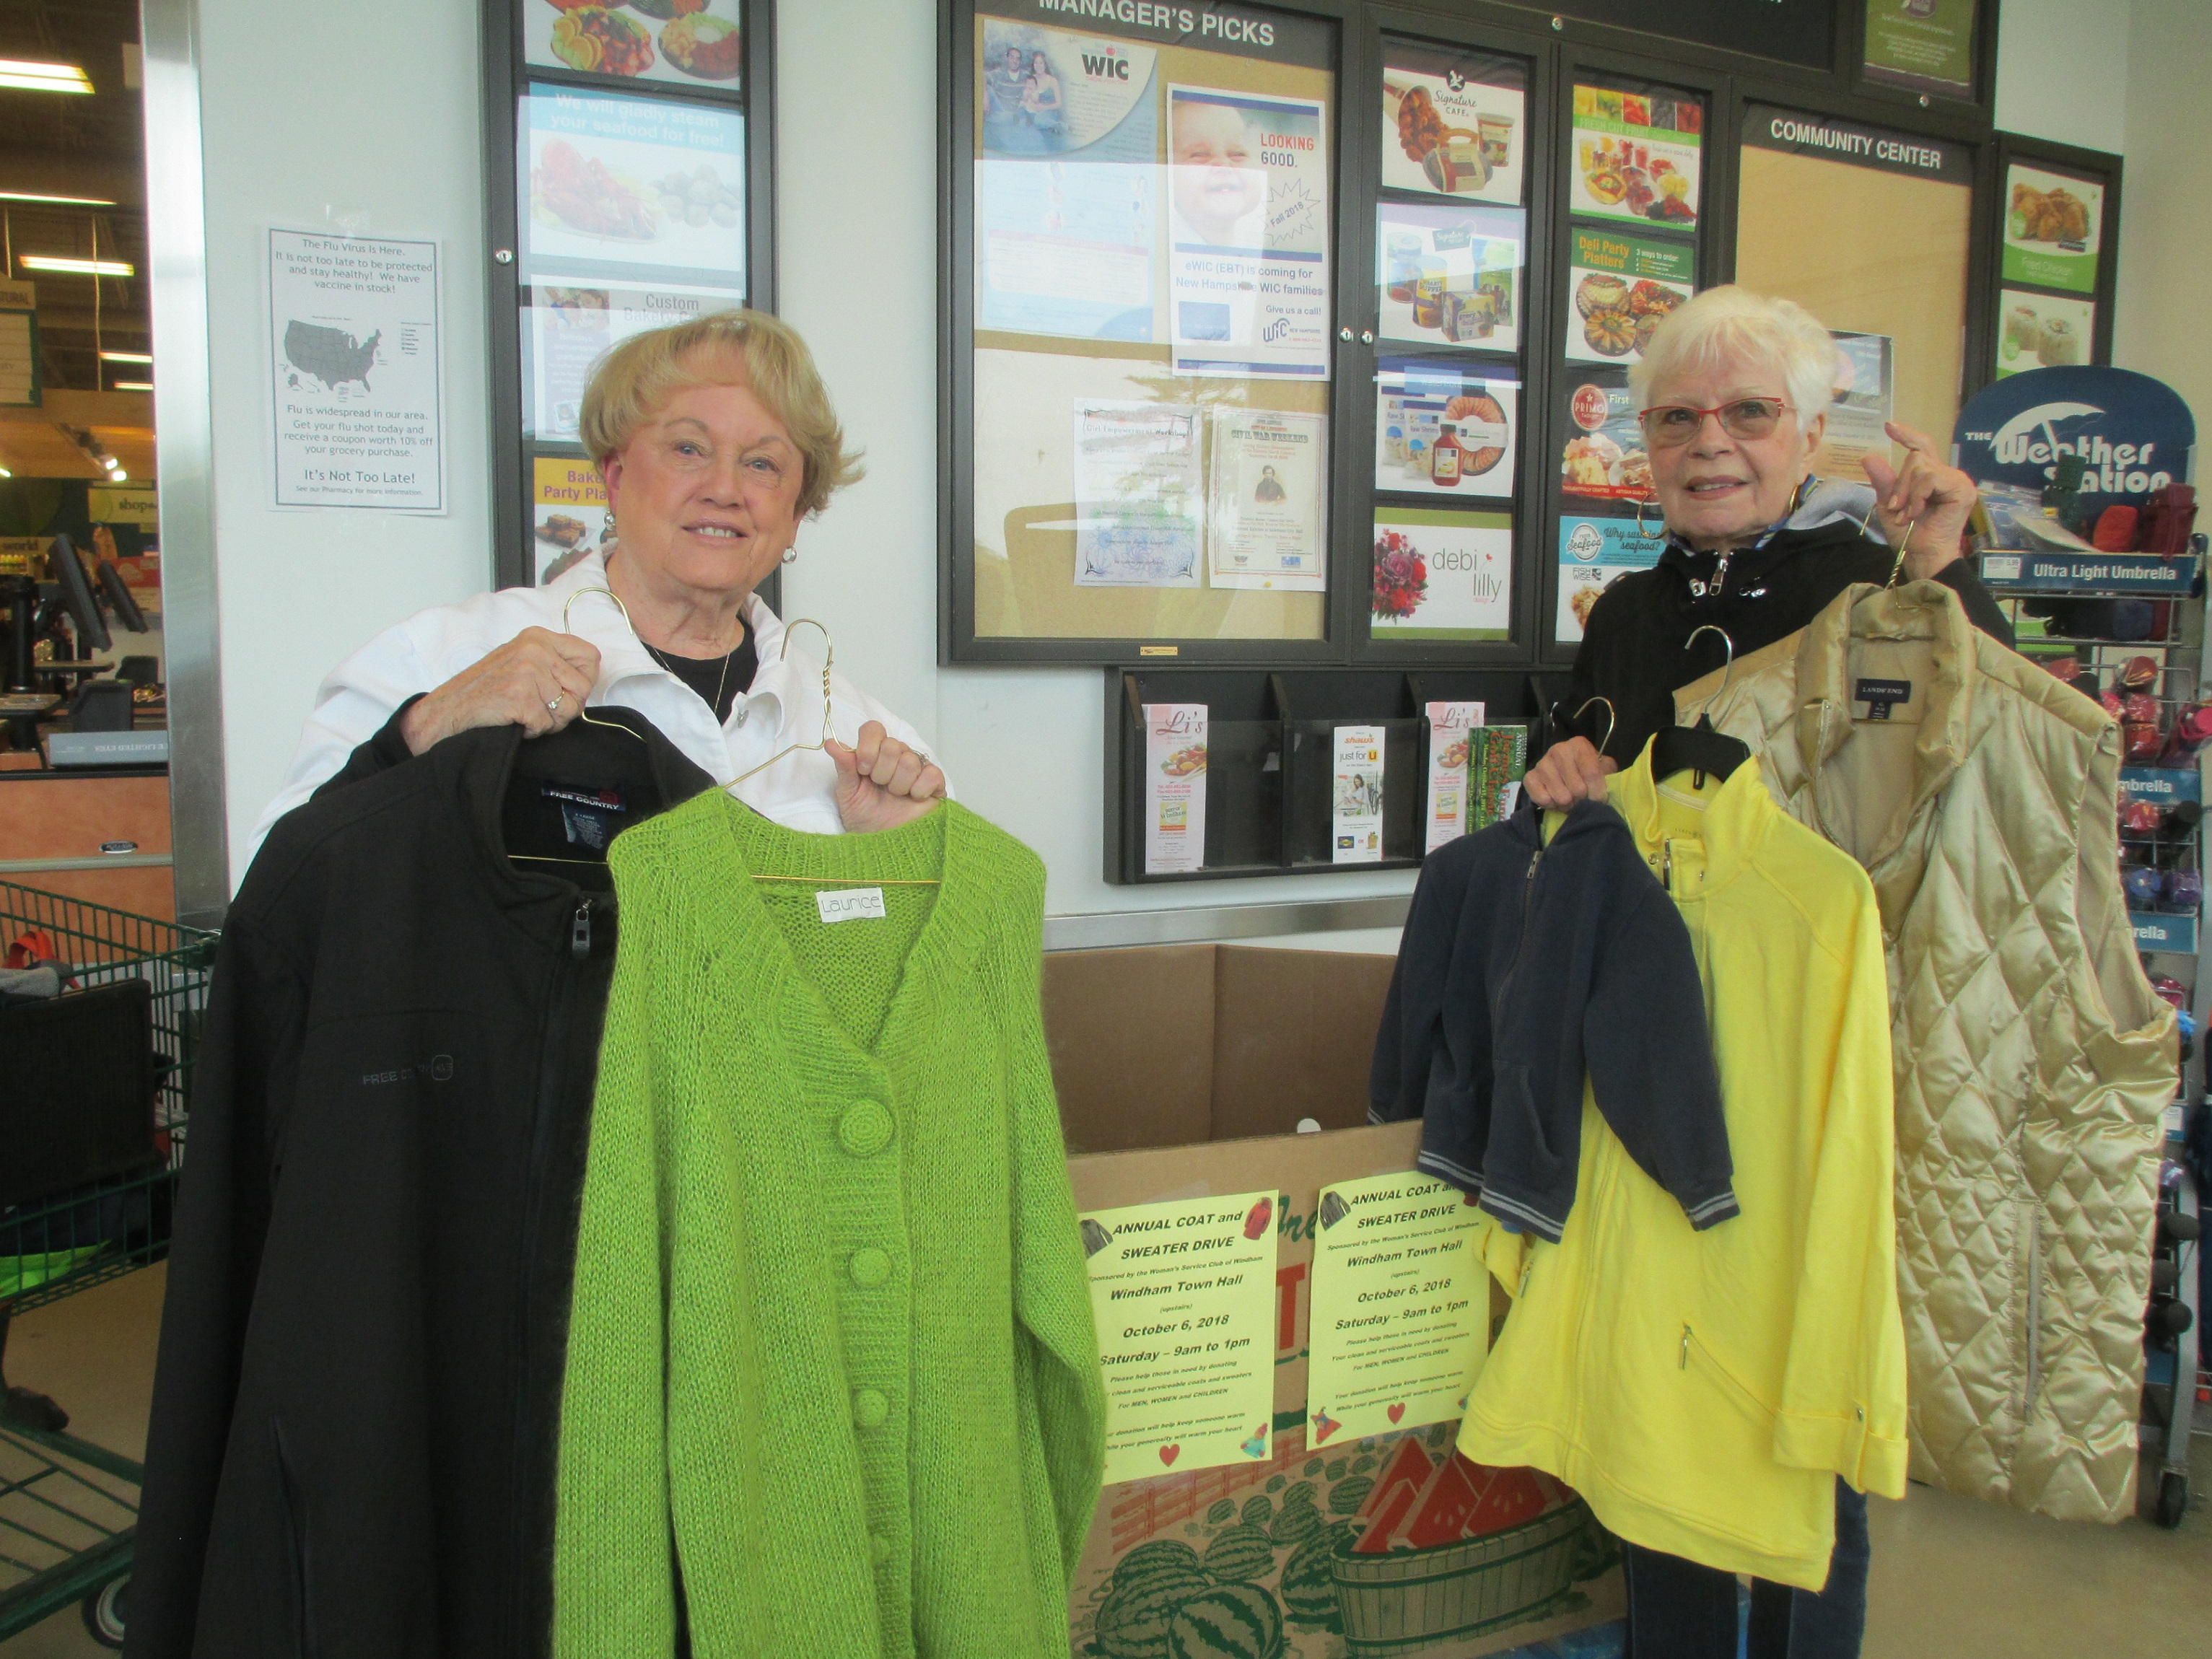 2018 COAT DRIVES BRINGS 1,475 ITEMS TO FAMILIES!